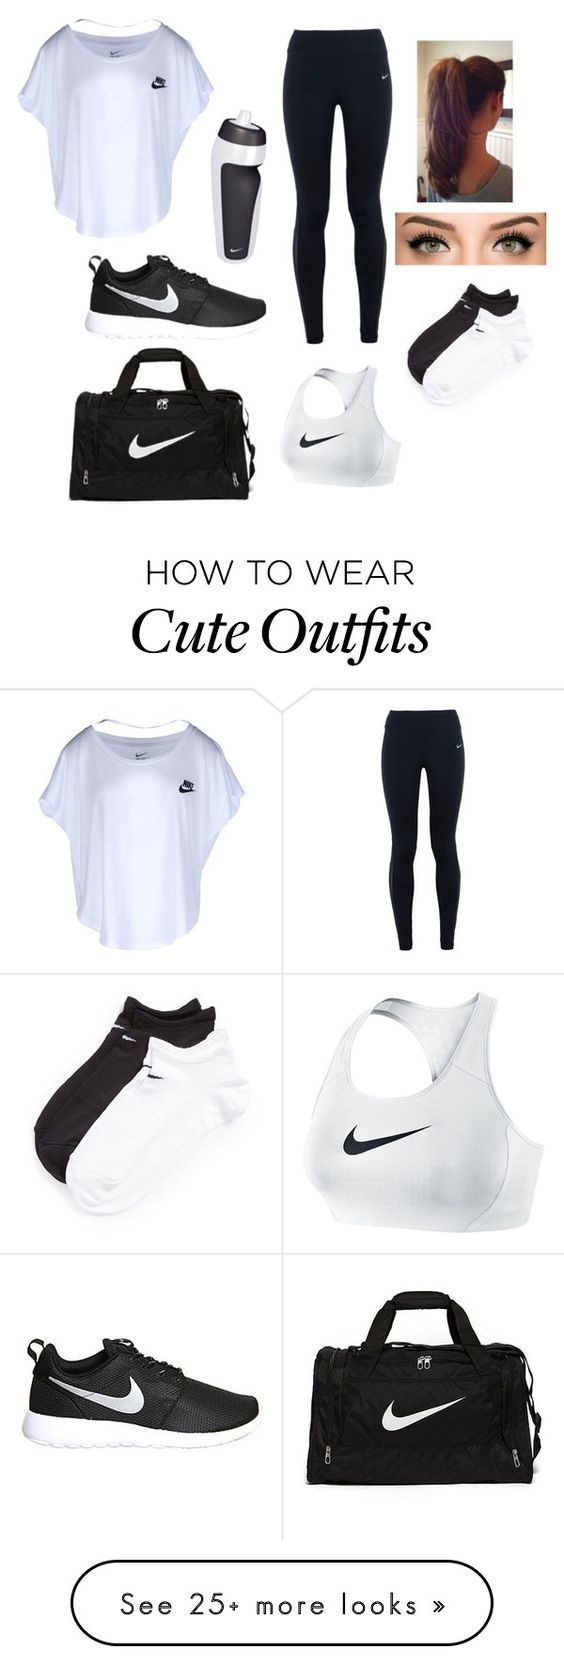 Good for lazy or gym school days Clothing, Shoes & Jewelry : Women : Shoes http://amzn.to/2k0ZSzK